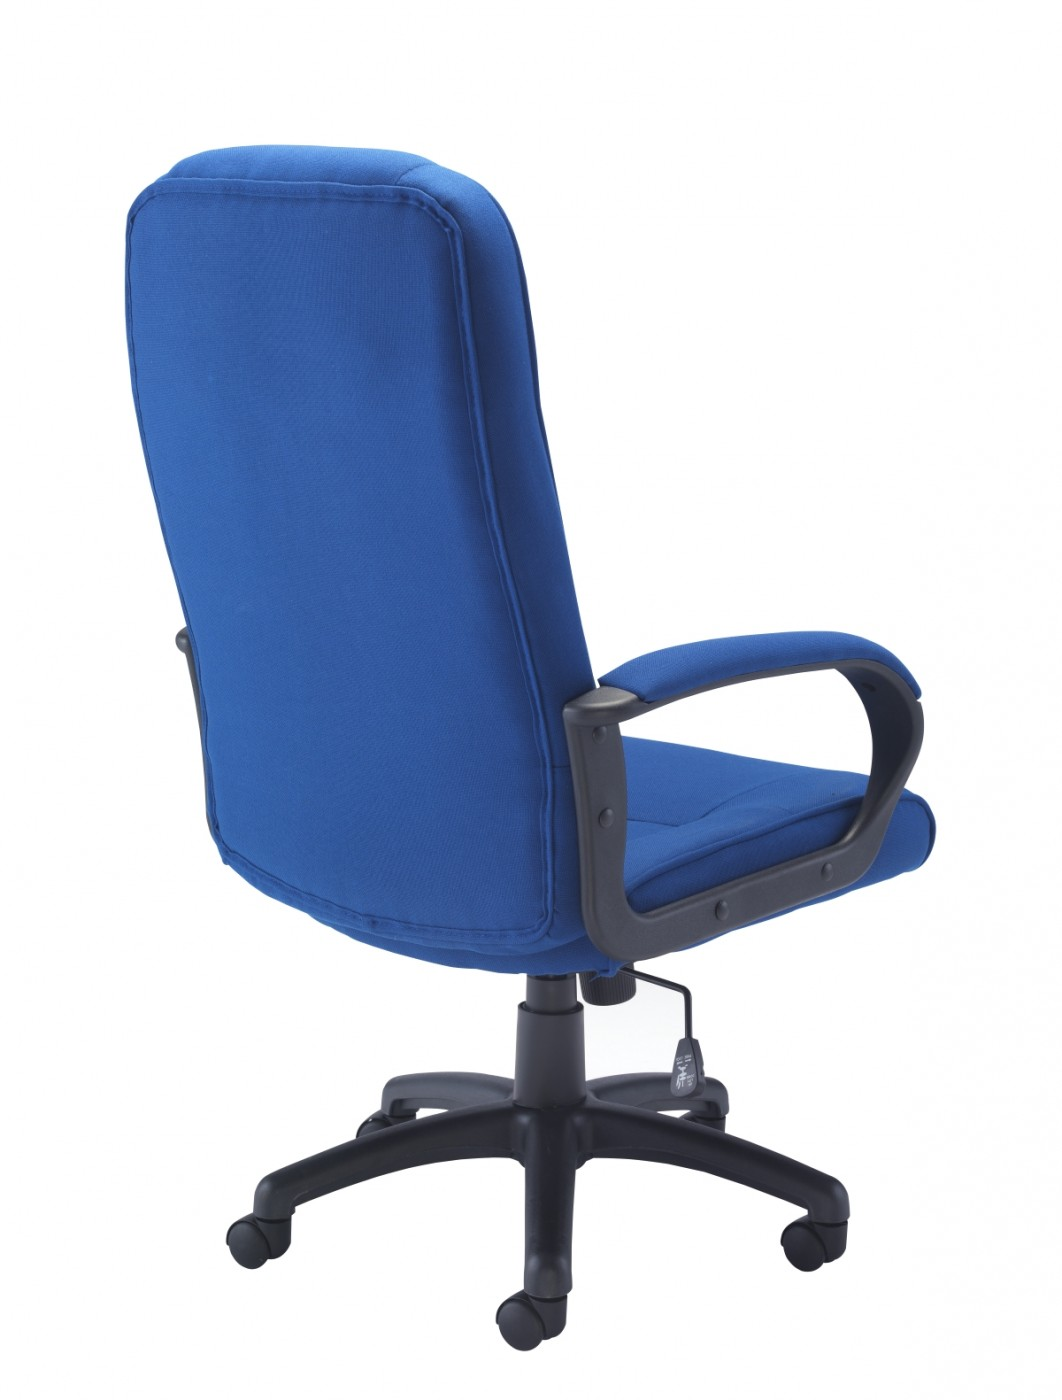 fabric office chairs uk chair for sciatica tc keno ch0137 121